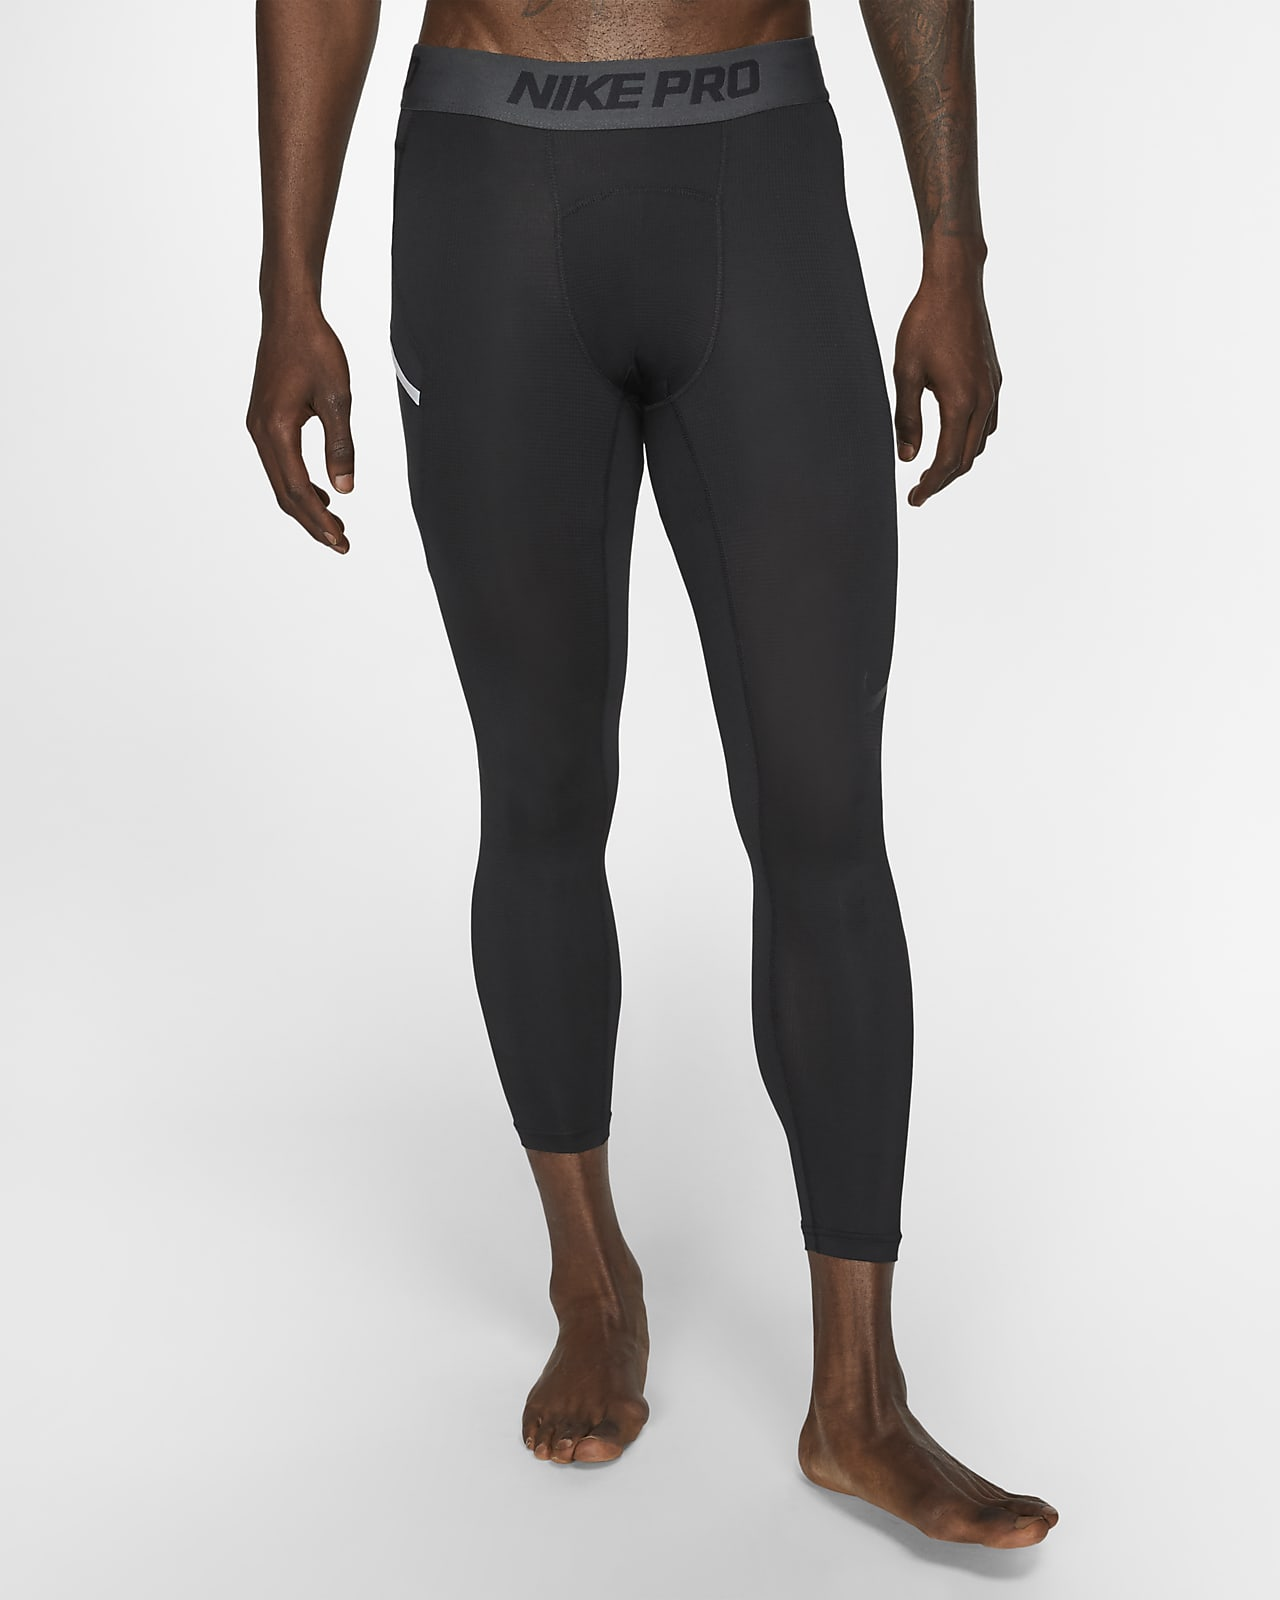 Nike Pro Men's 3/4 Basketball Tights